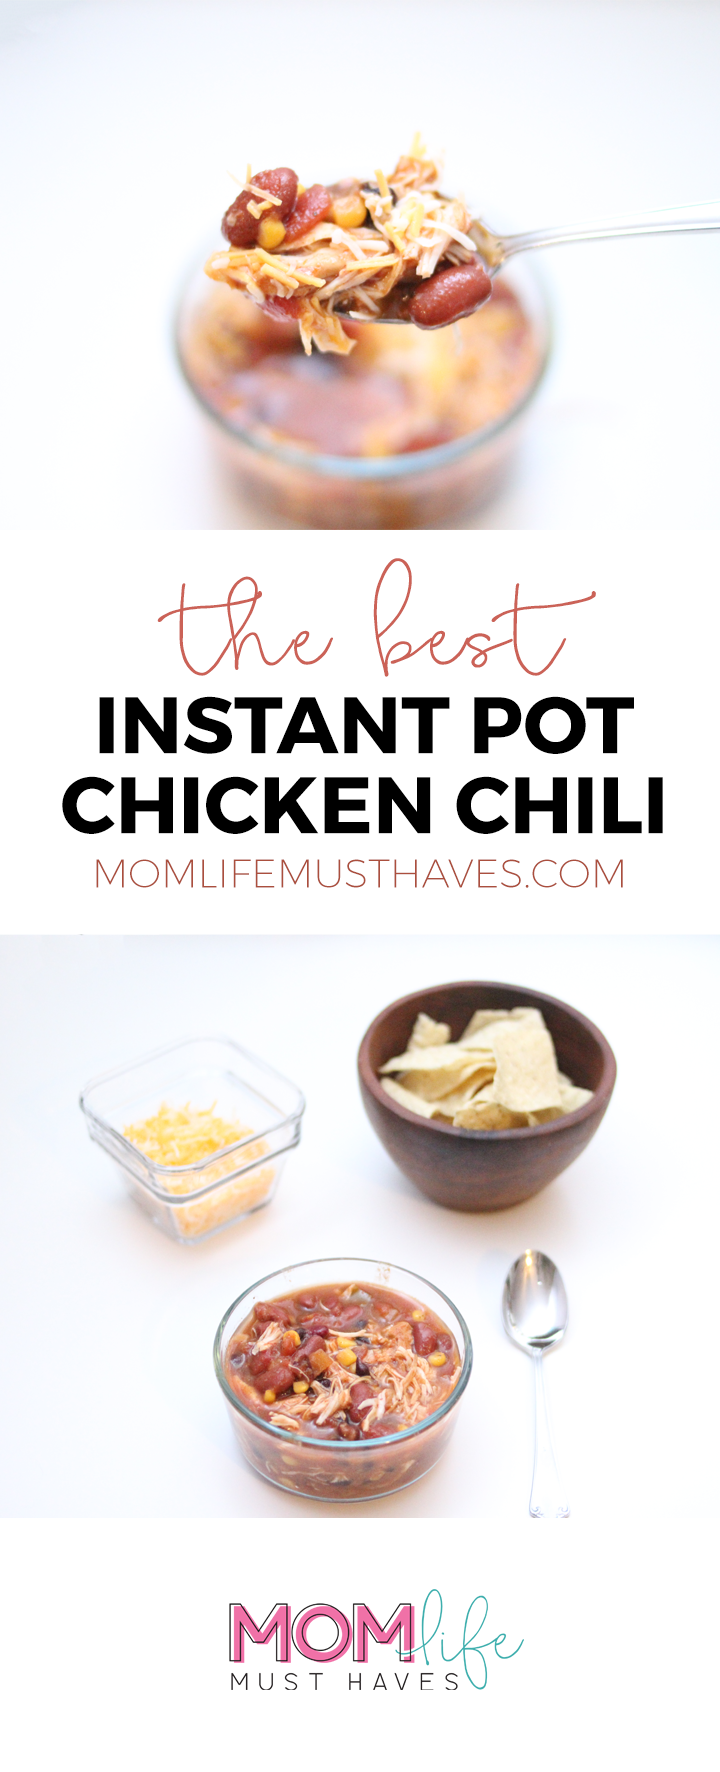 The best instant pot chicken chili recipe || An easy chili recipe the whole family will love at momlifemusthaves.com